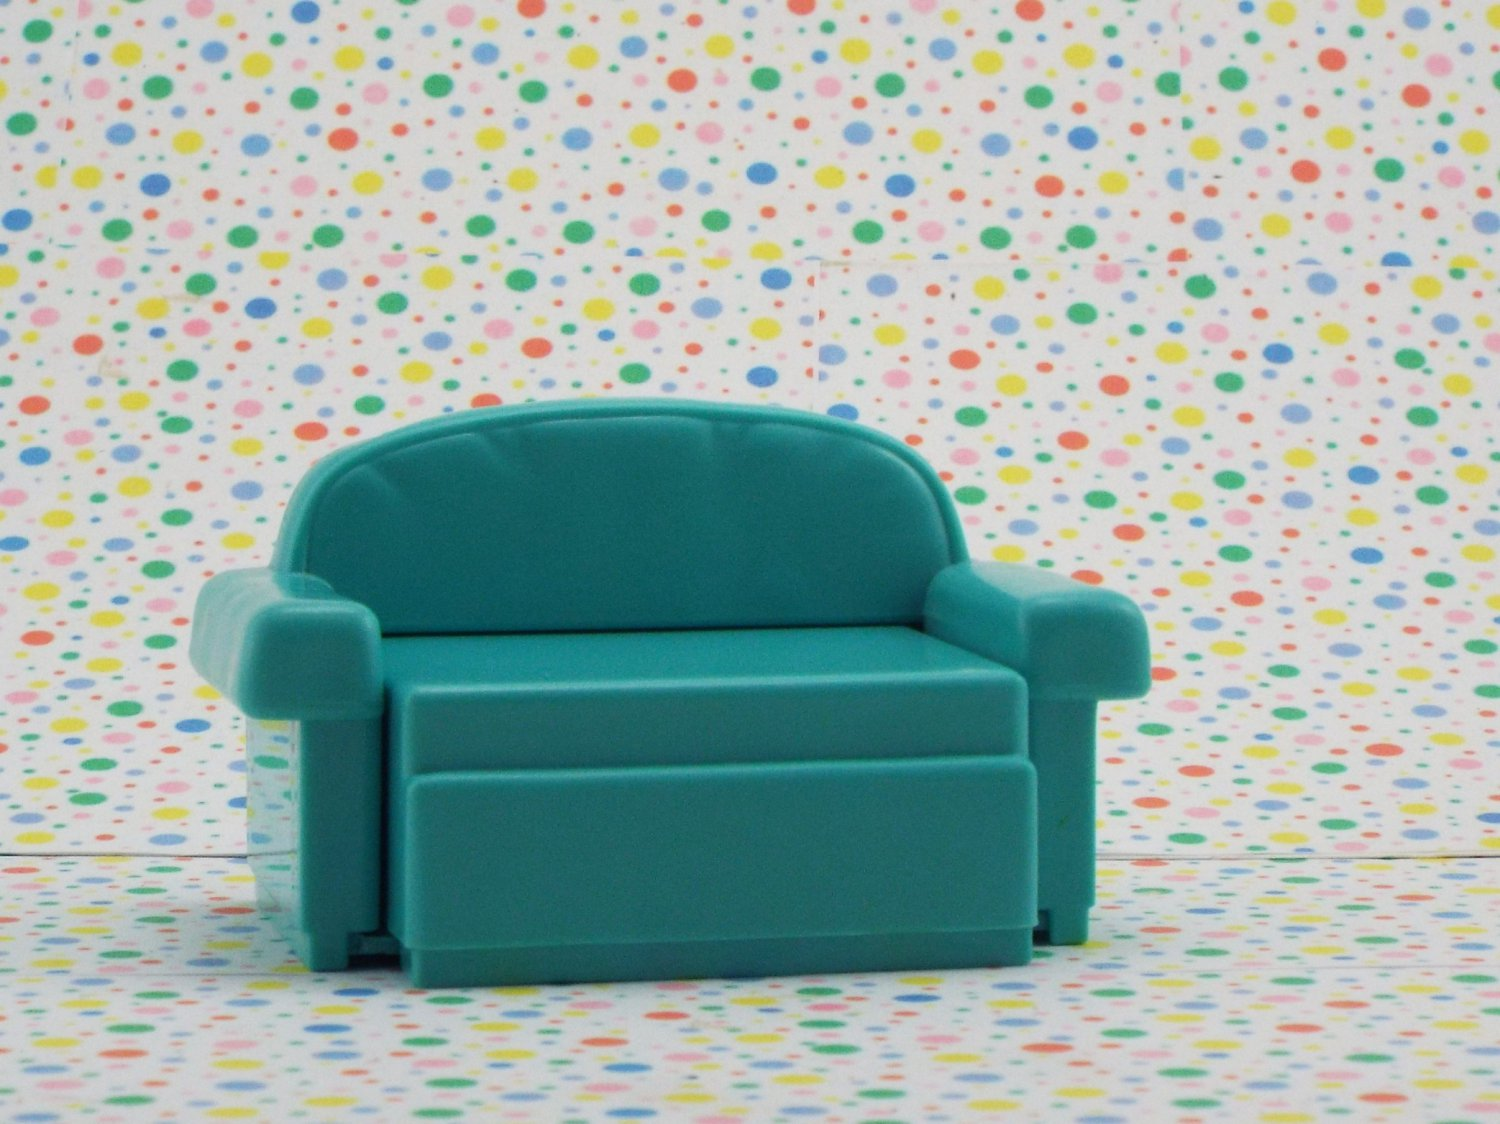 Fisher Price Loving Family Dollhouse Green Pull Out Couch